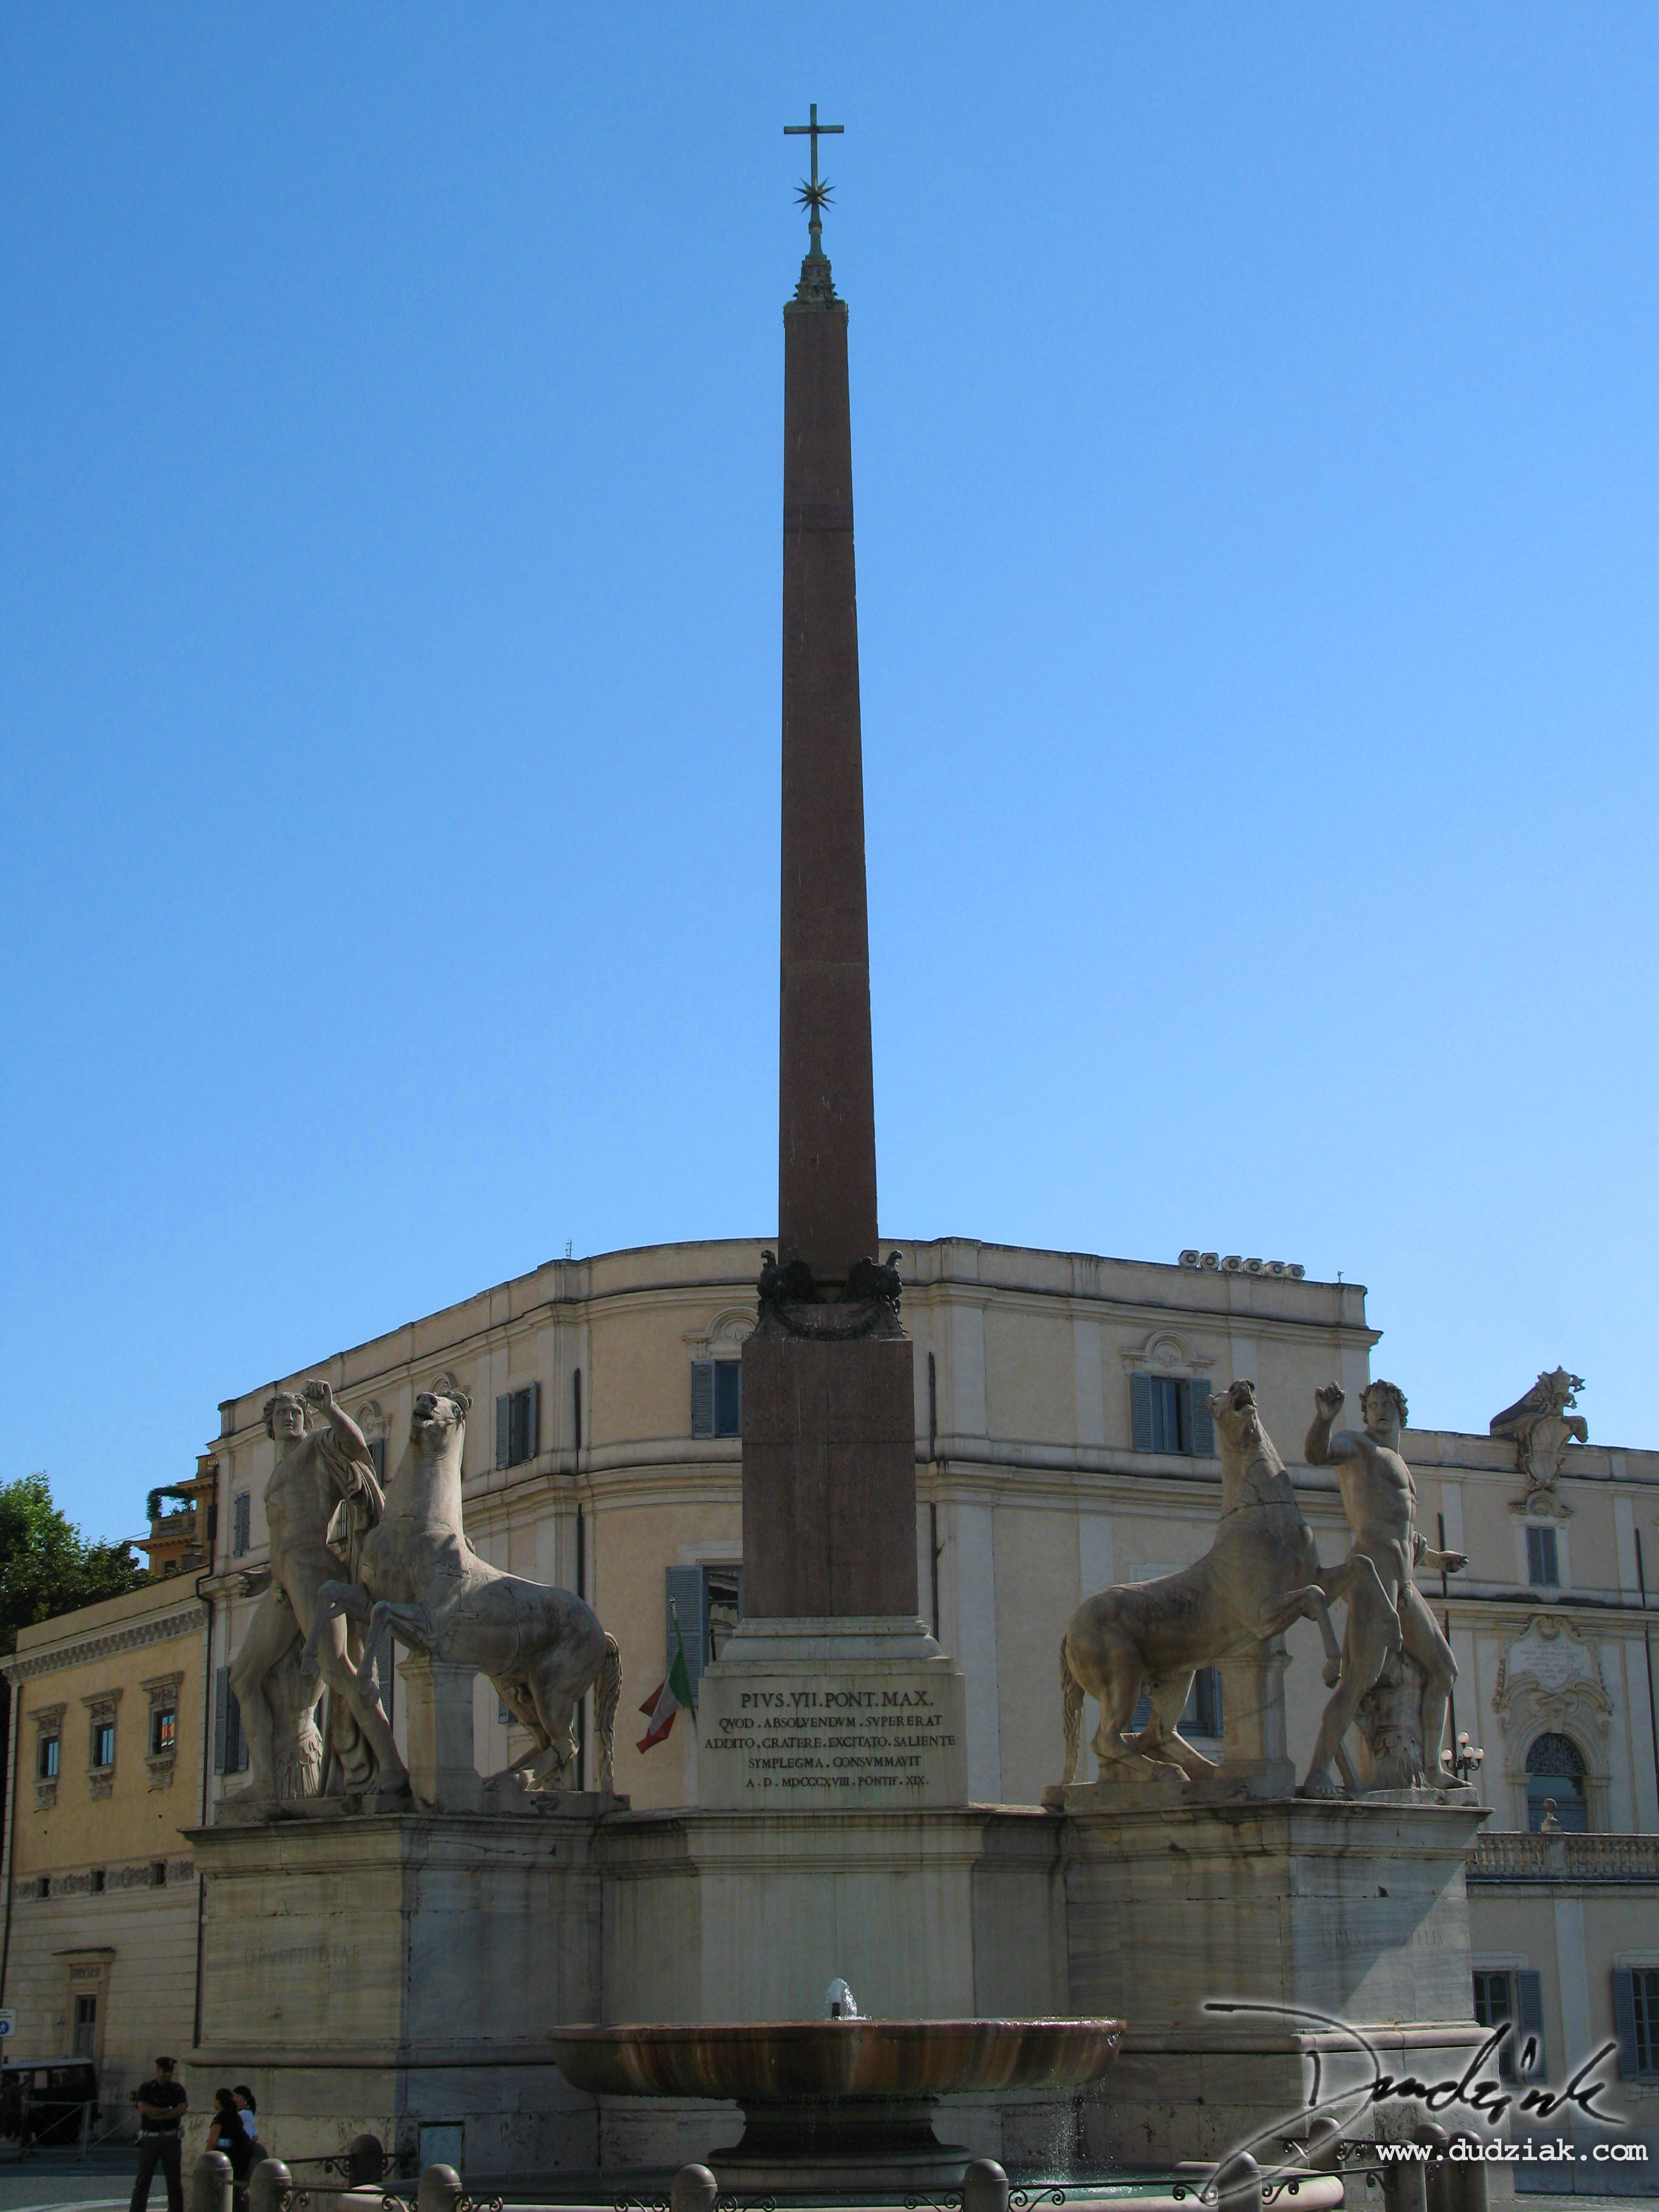 Picture of the egyptian obelisk in the Quirinale Plazza, (plazzo quinriale).